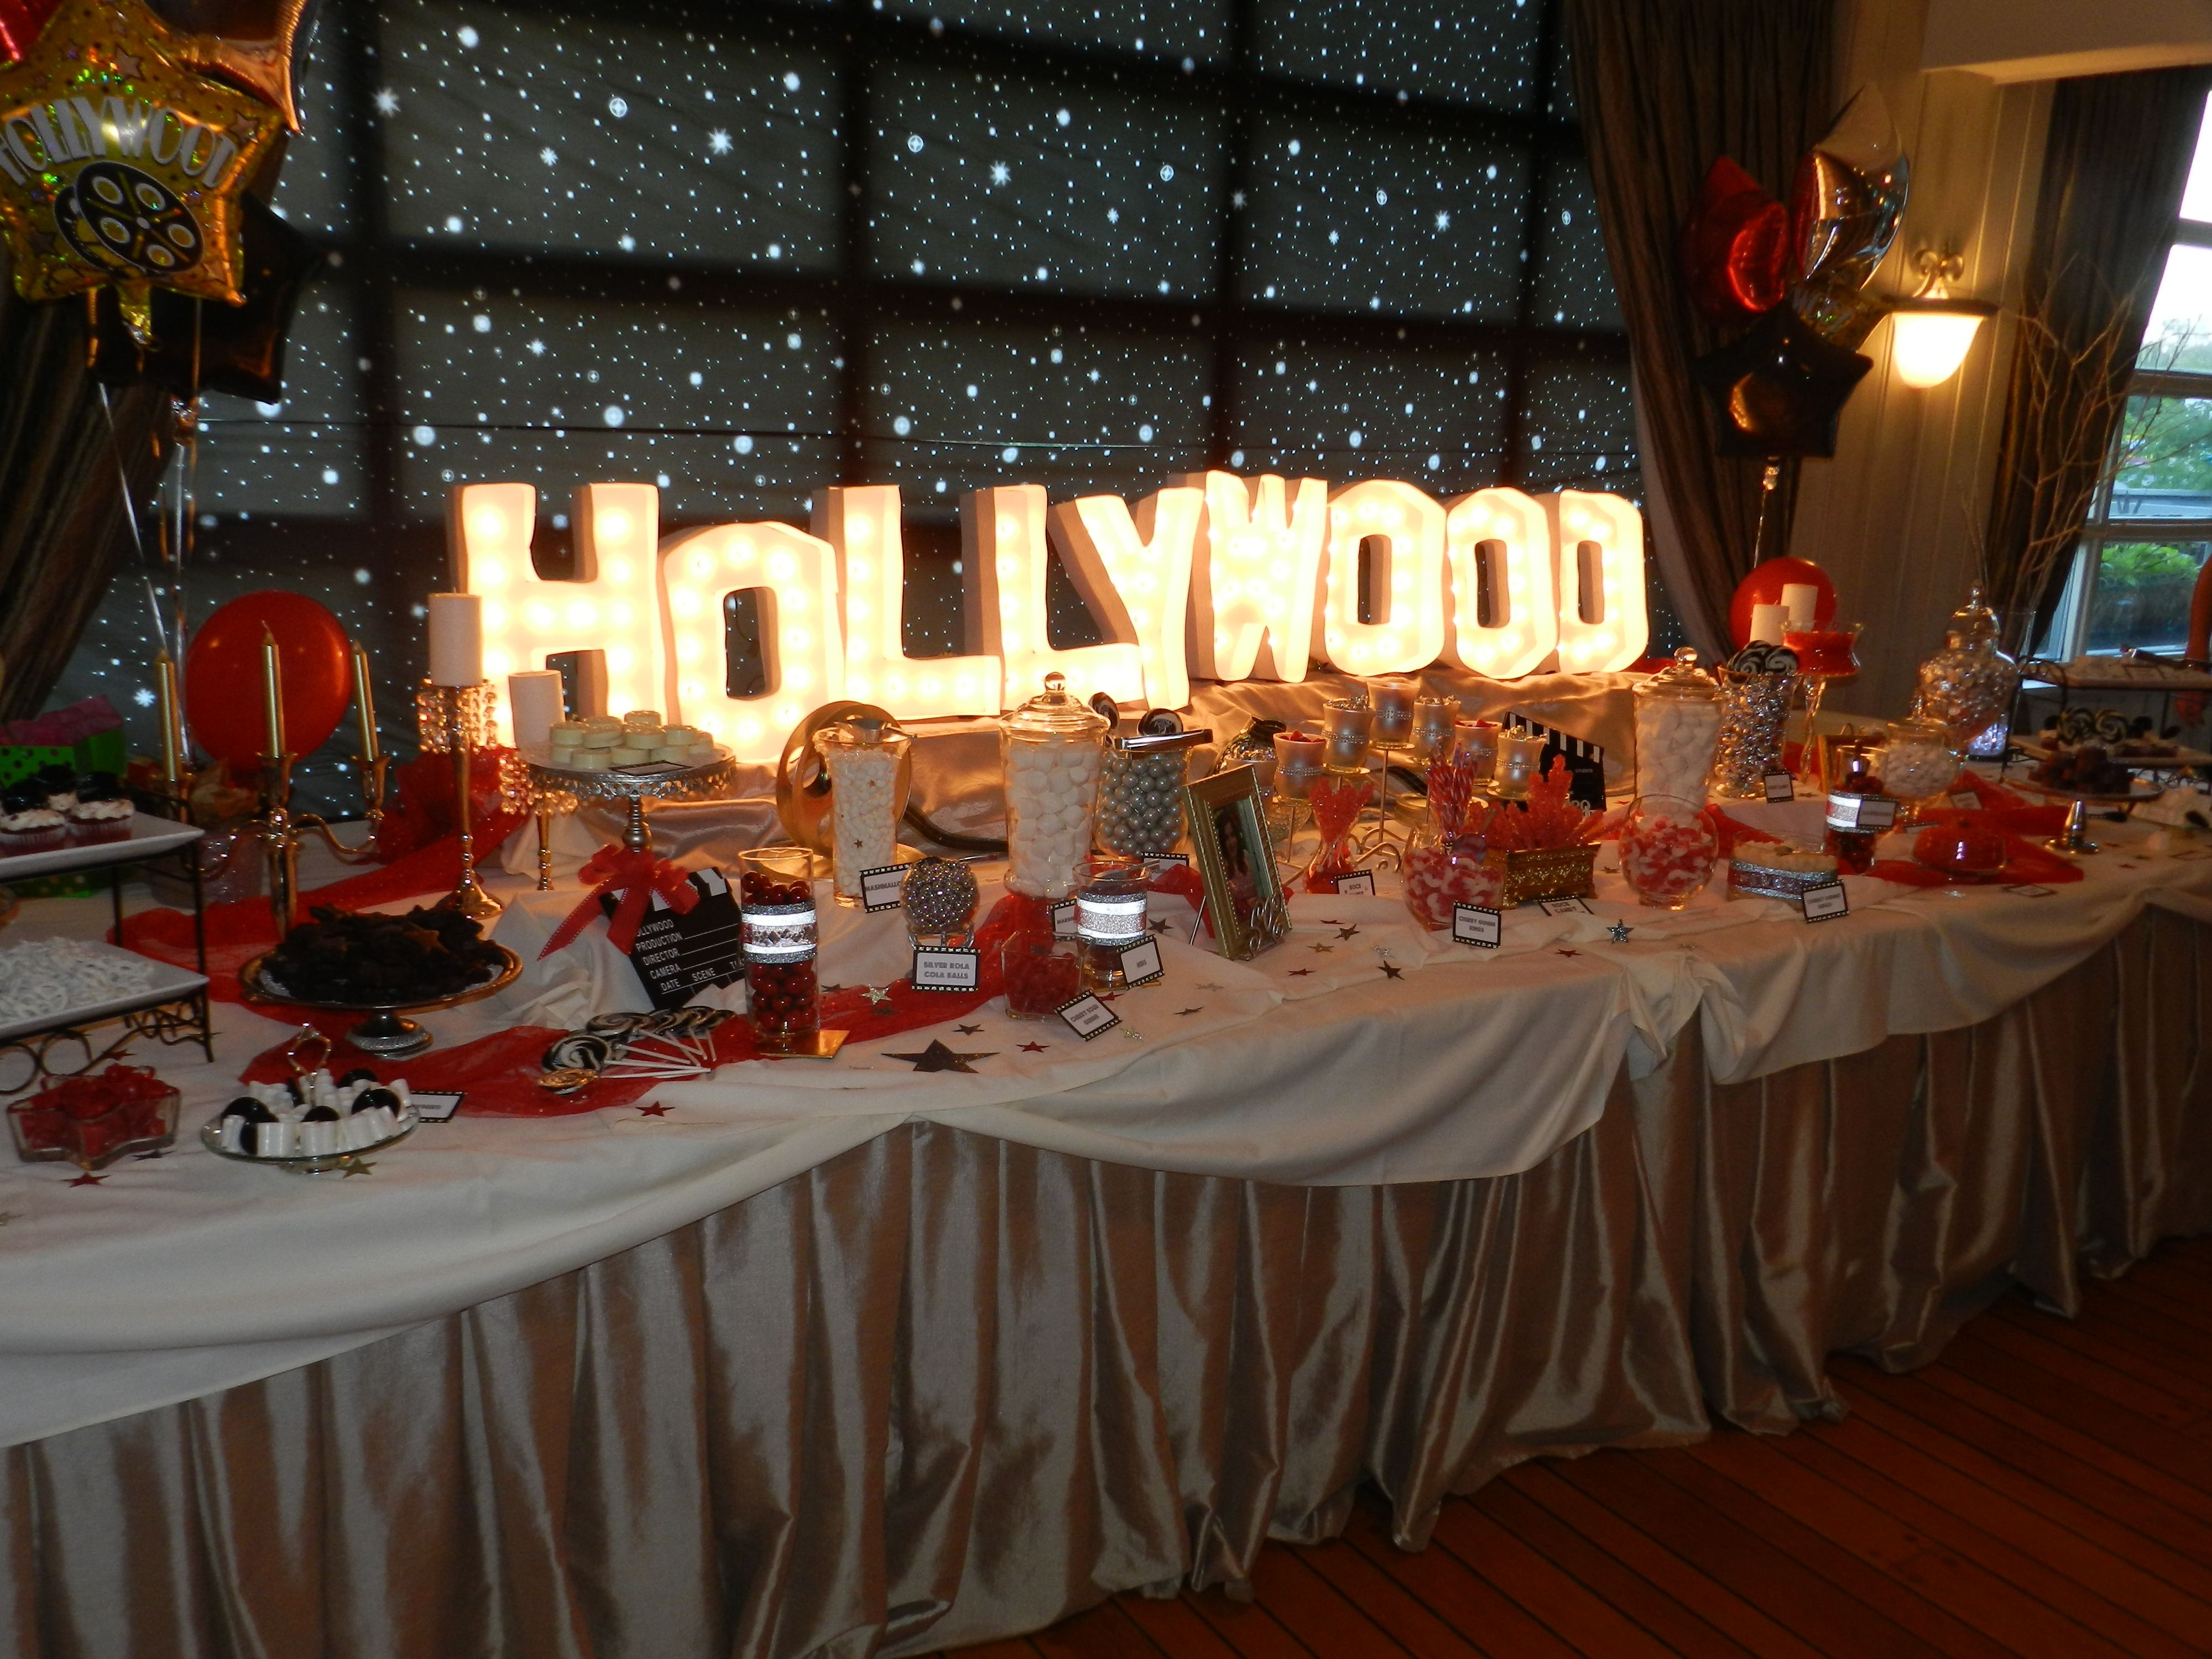 Mottoparty Themen Hollywood Sweet 16 Party Hollywood Theme Candy Bar